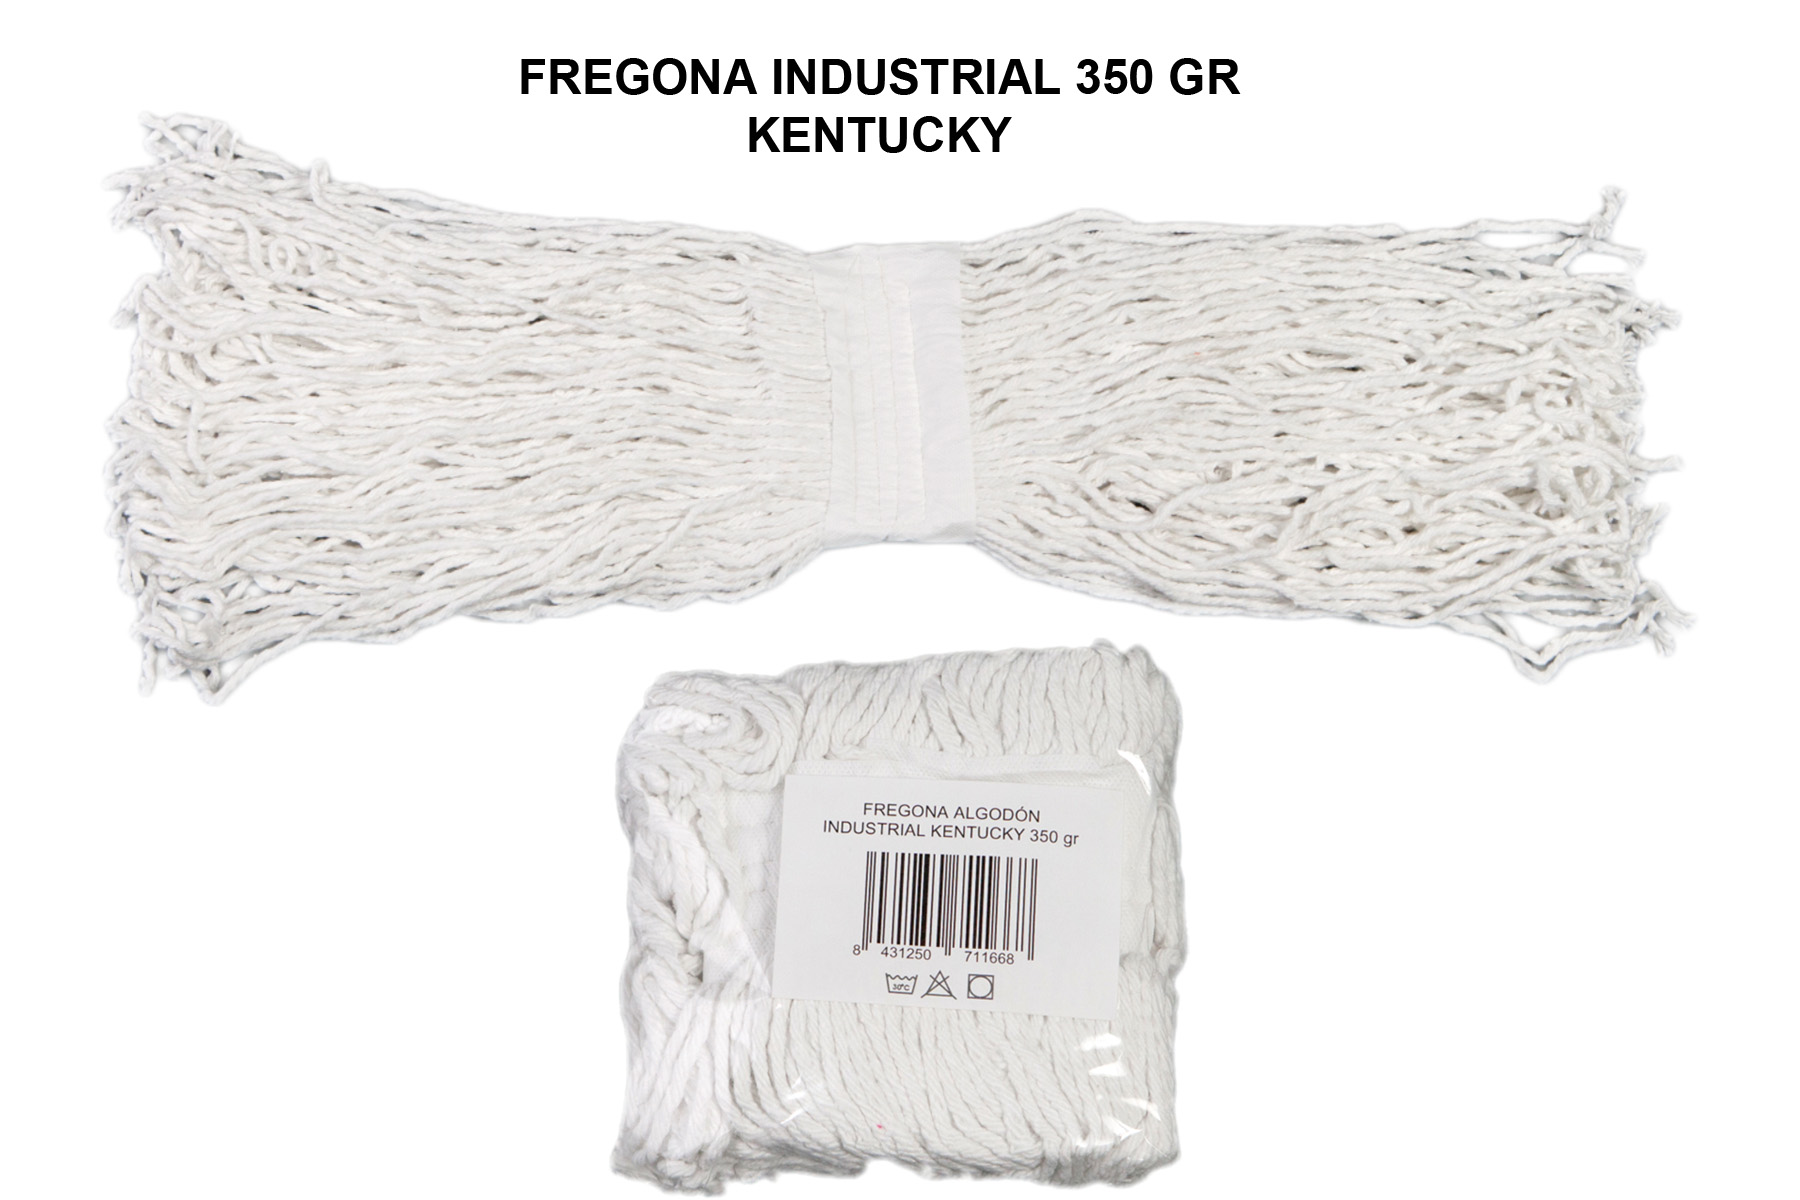 FREGONA INDUSTRIAL 350 GR KENTUCKY